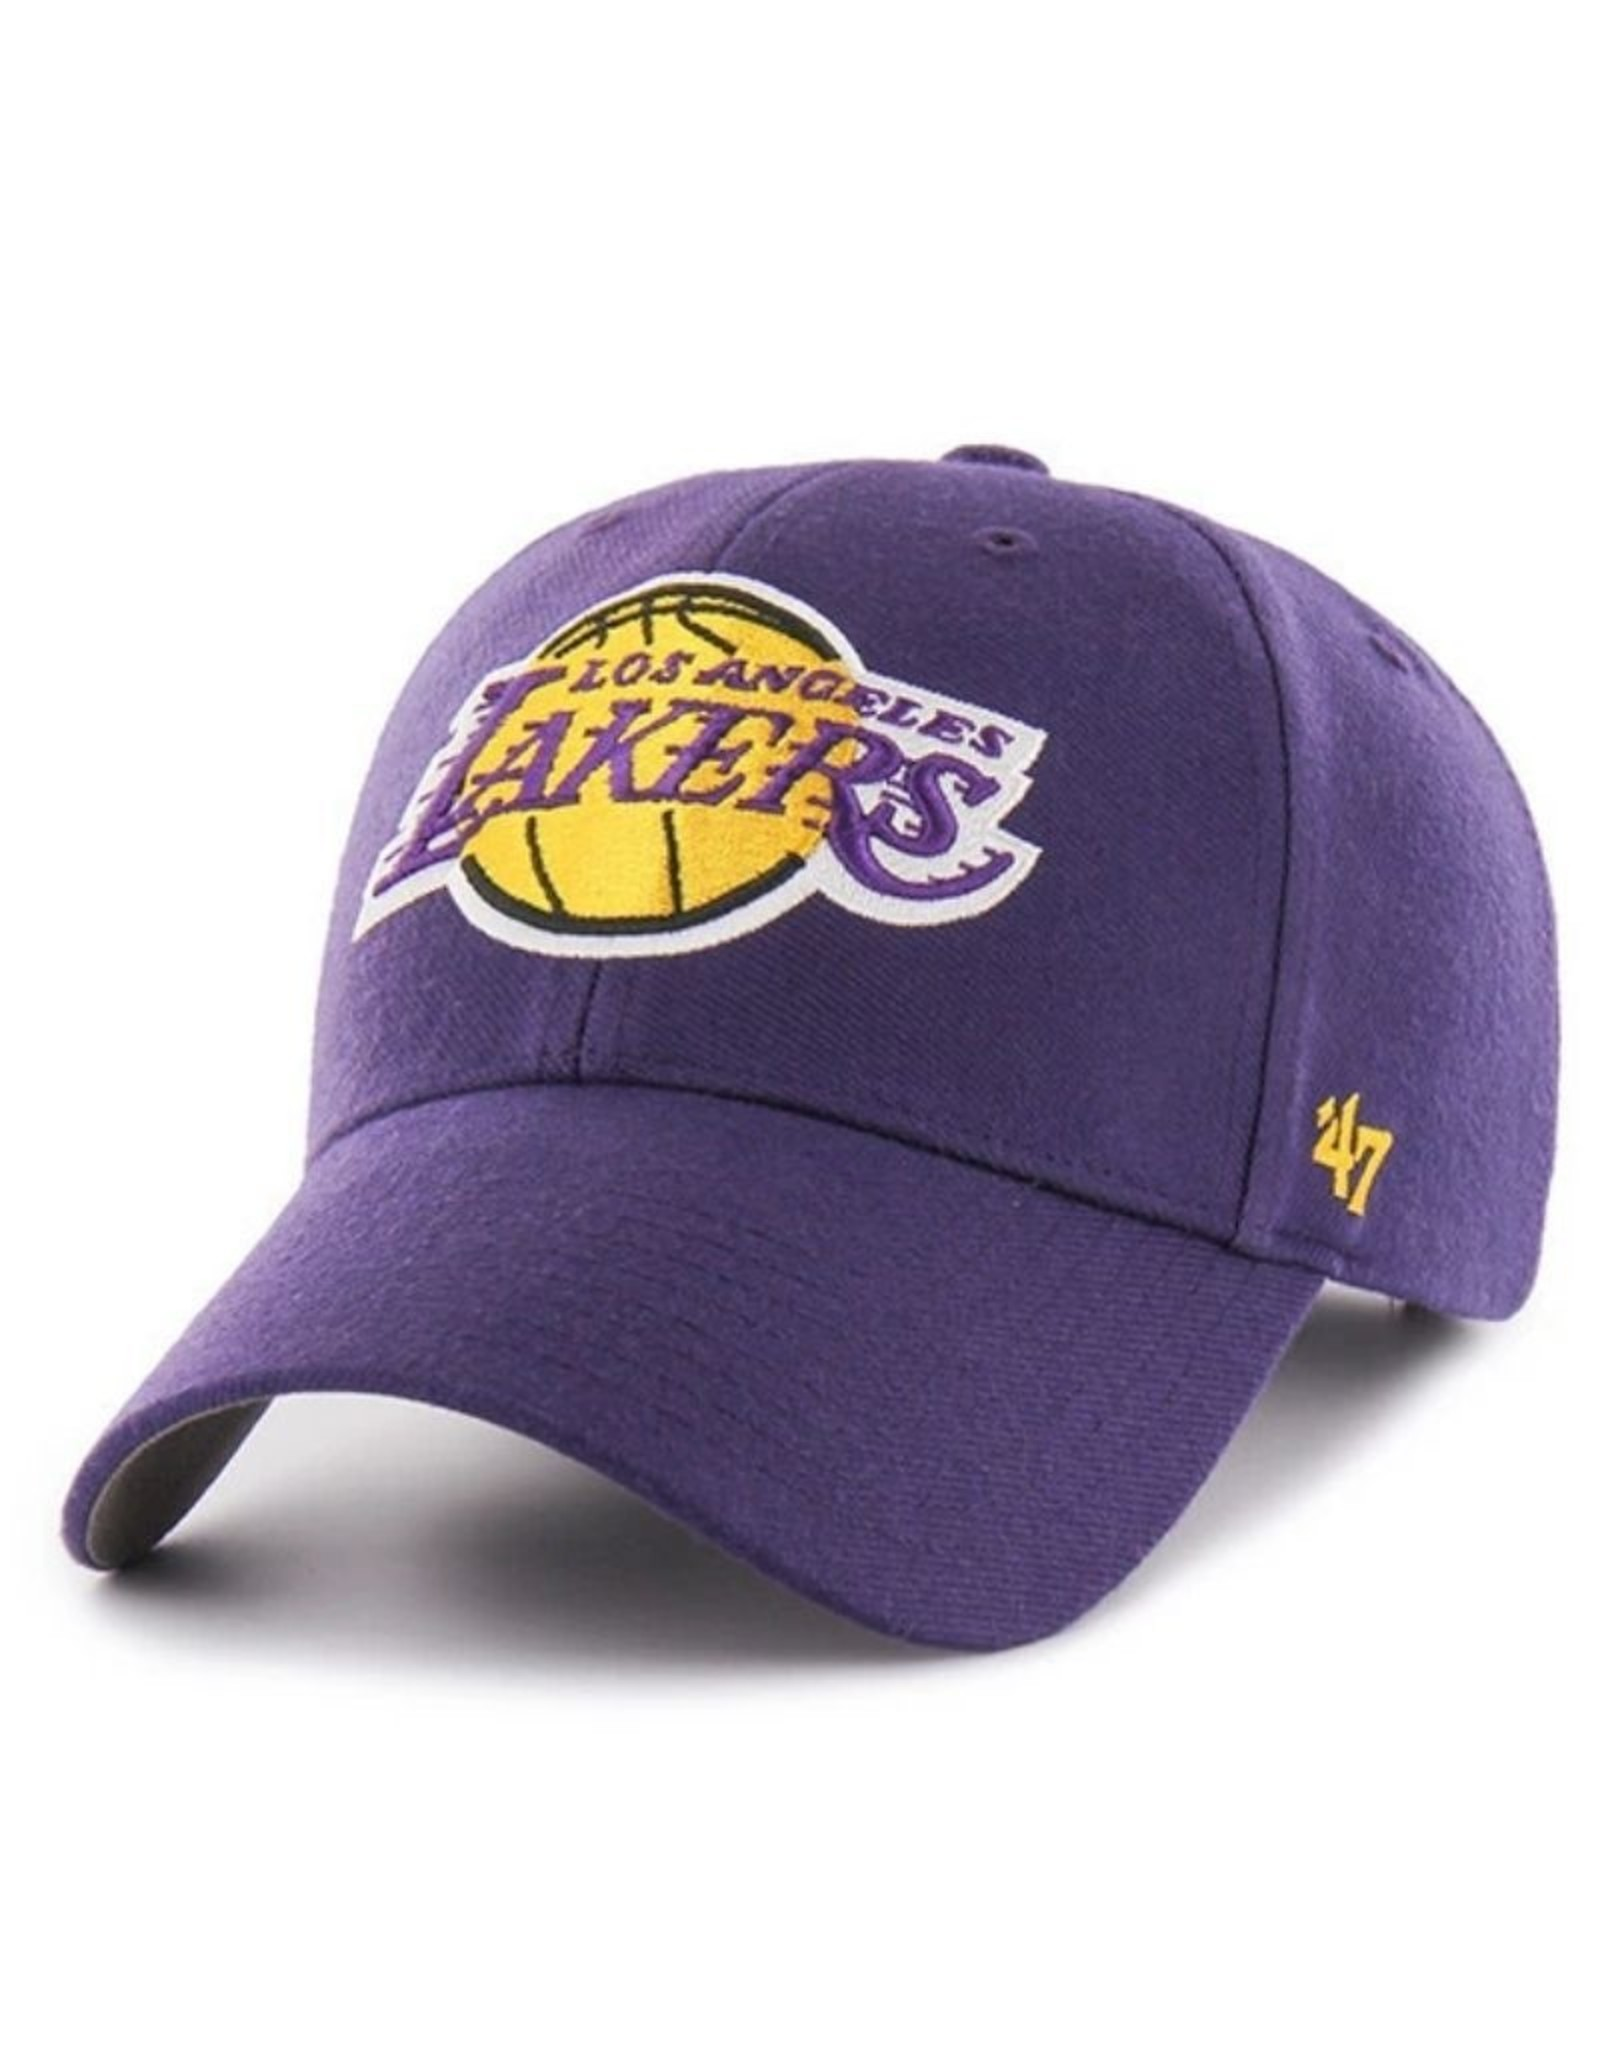 '47 MVP Men's Hat Primary Logo Los Angeles Lakers Purple Adjustable